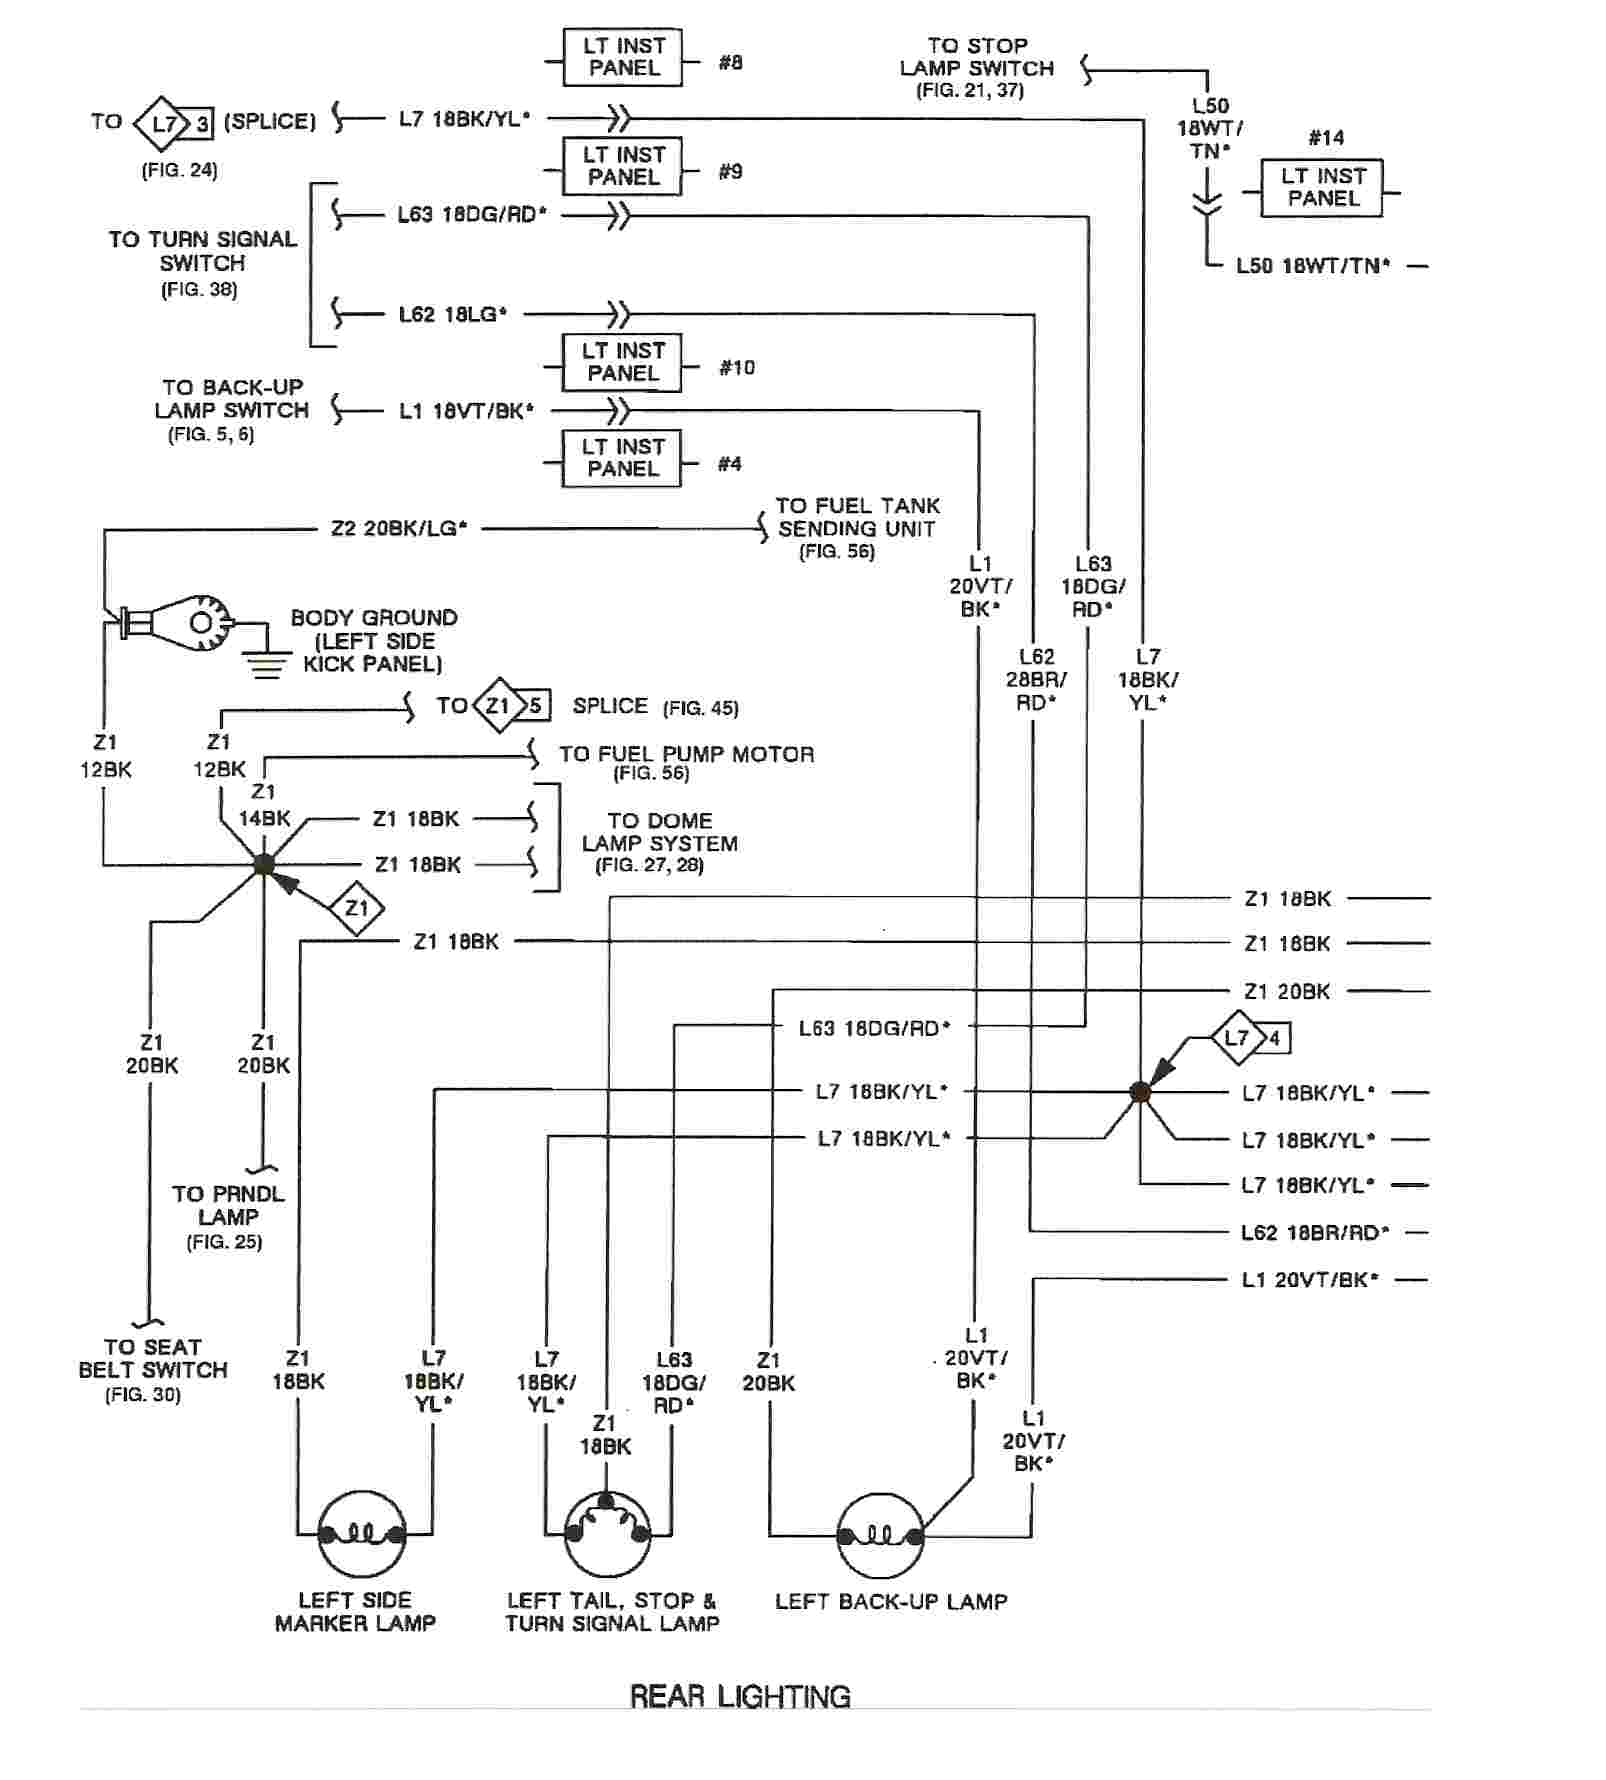 2012 Dodge Ram Headlight Wiring Diagram : Dodge ram headlight diagram gmc acadia